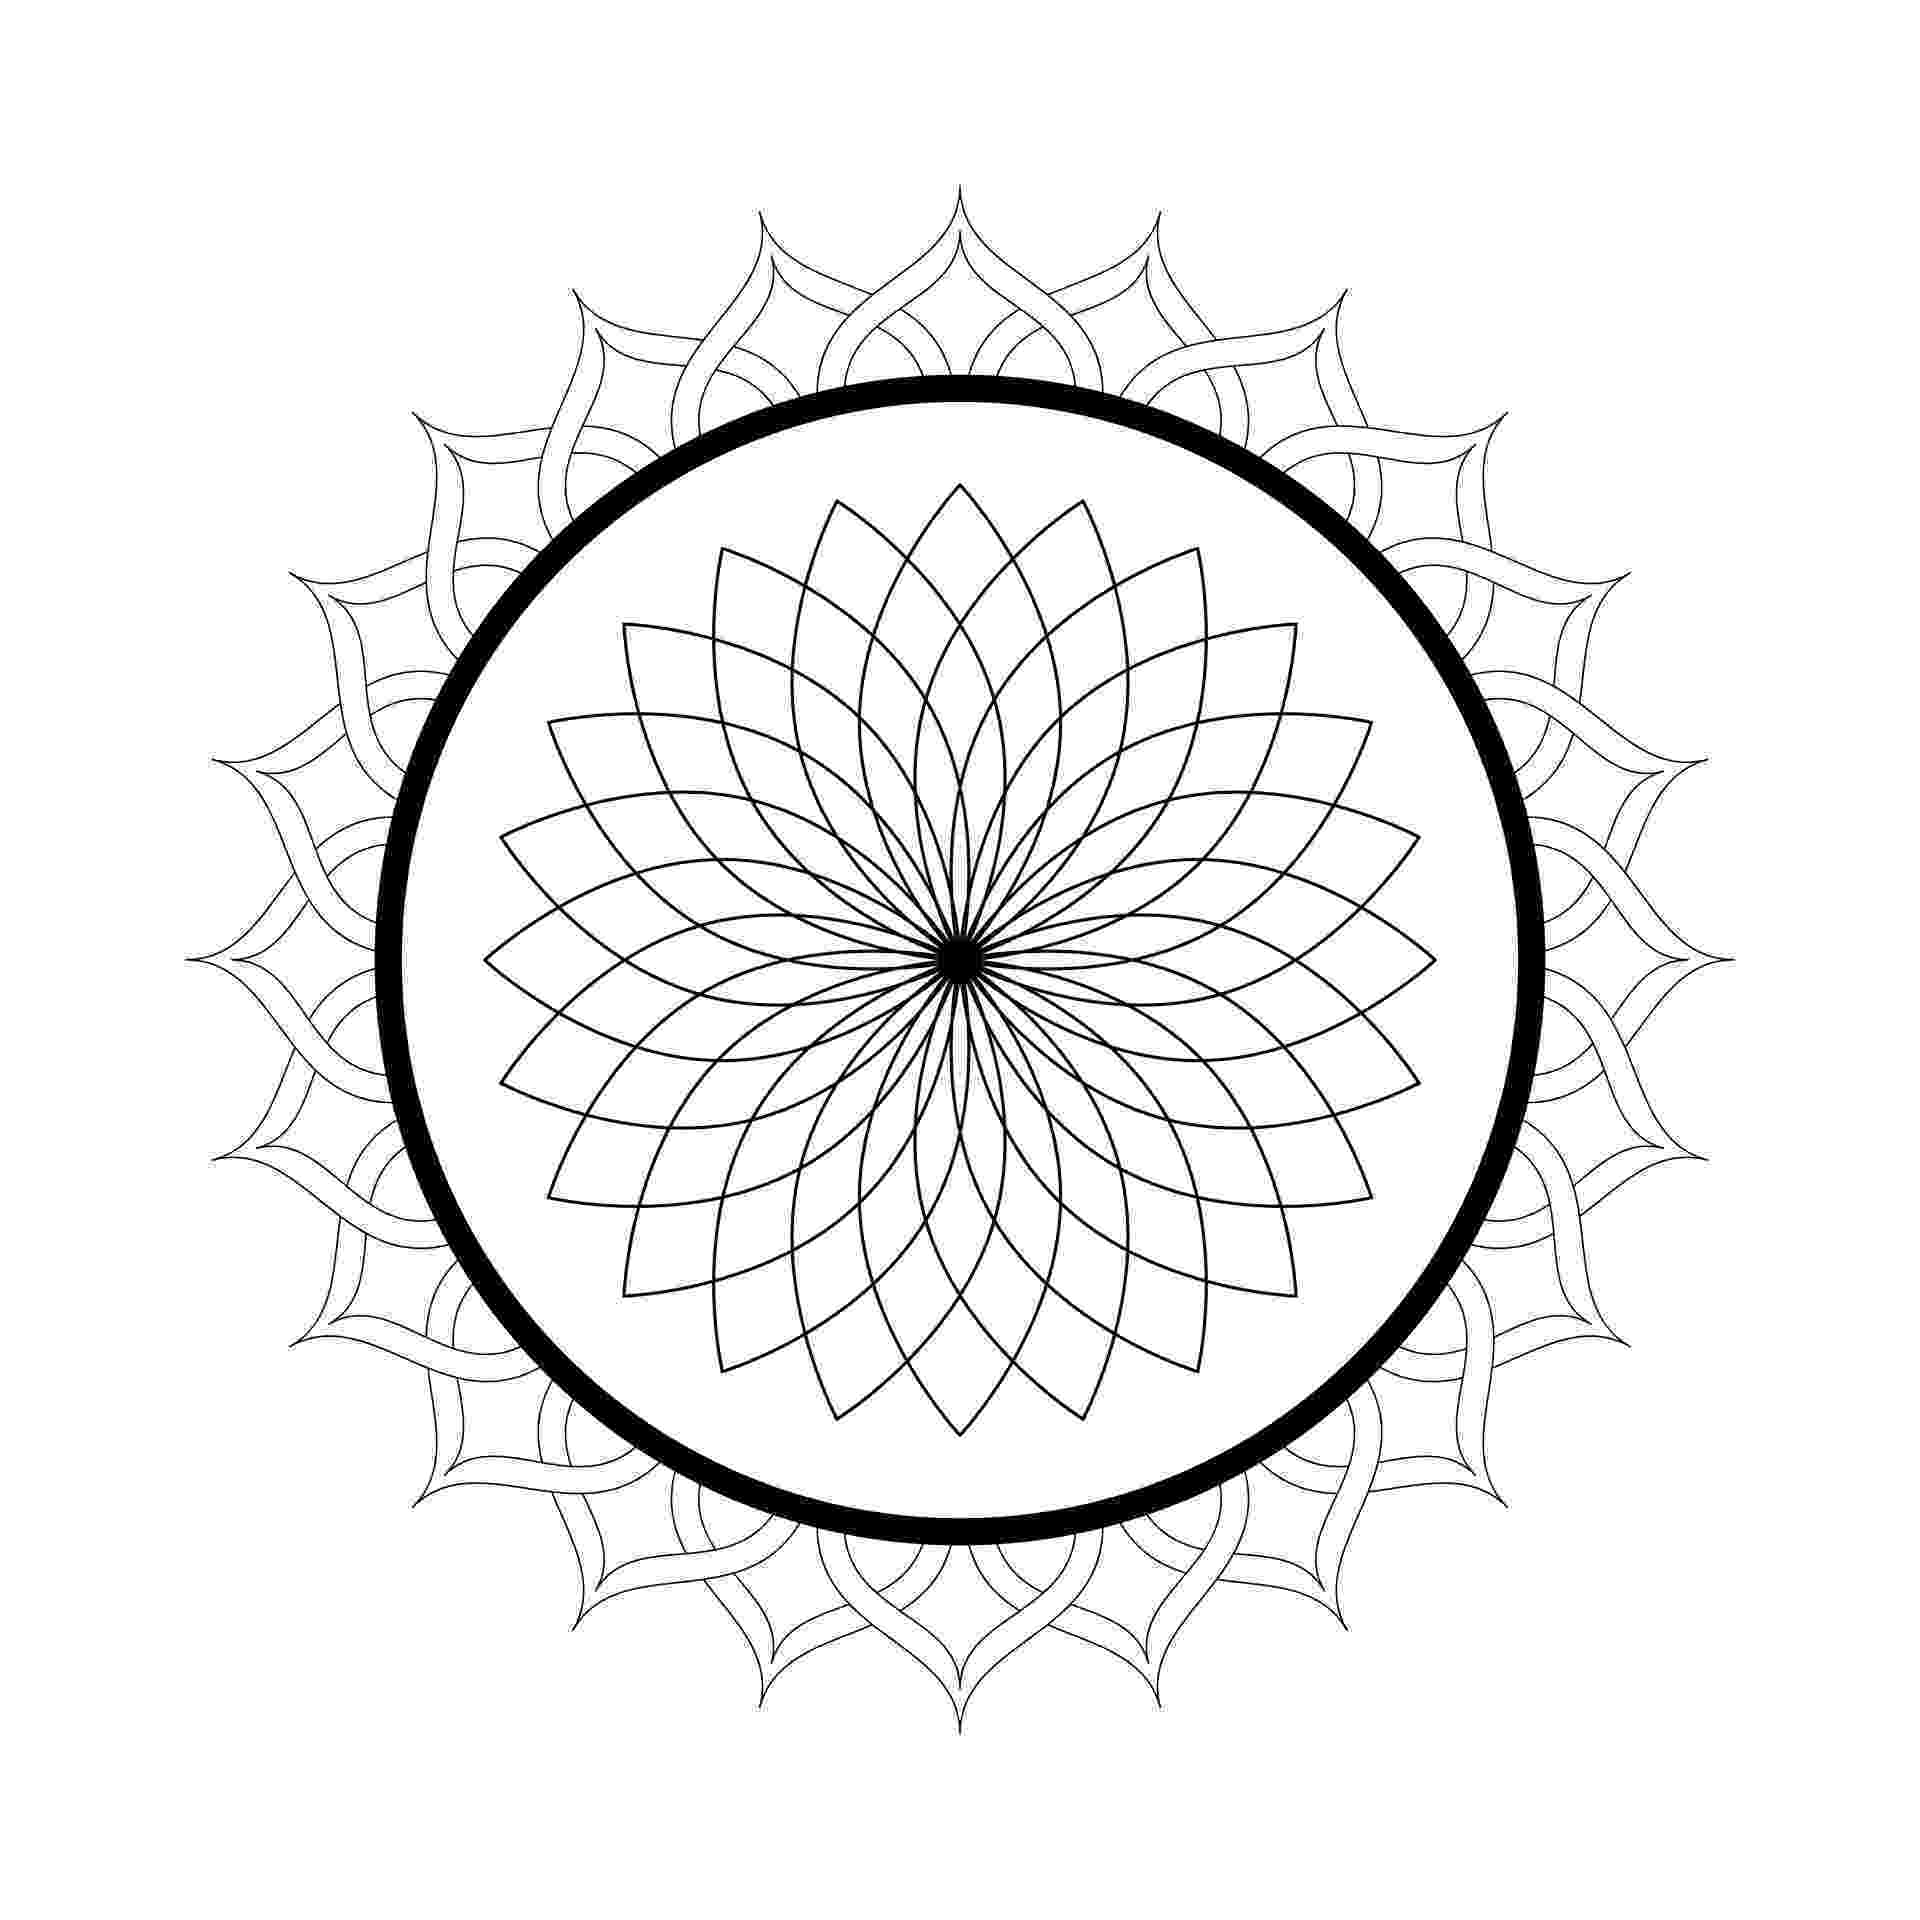 free printable mandala coloring sheets printable mandala coloring pages for kids cool2bkids sheets coloring mandala printable free